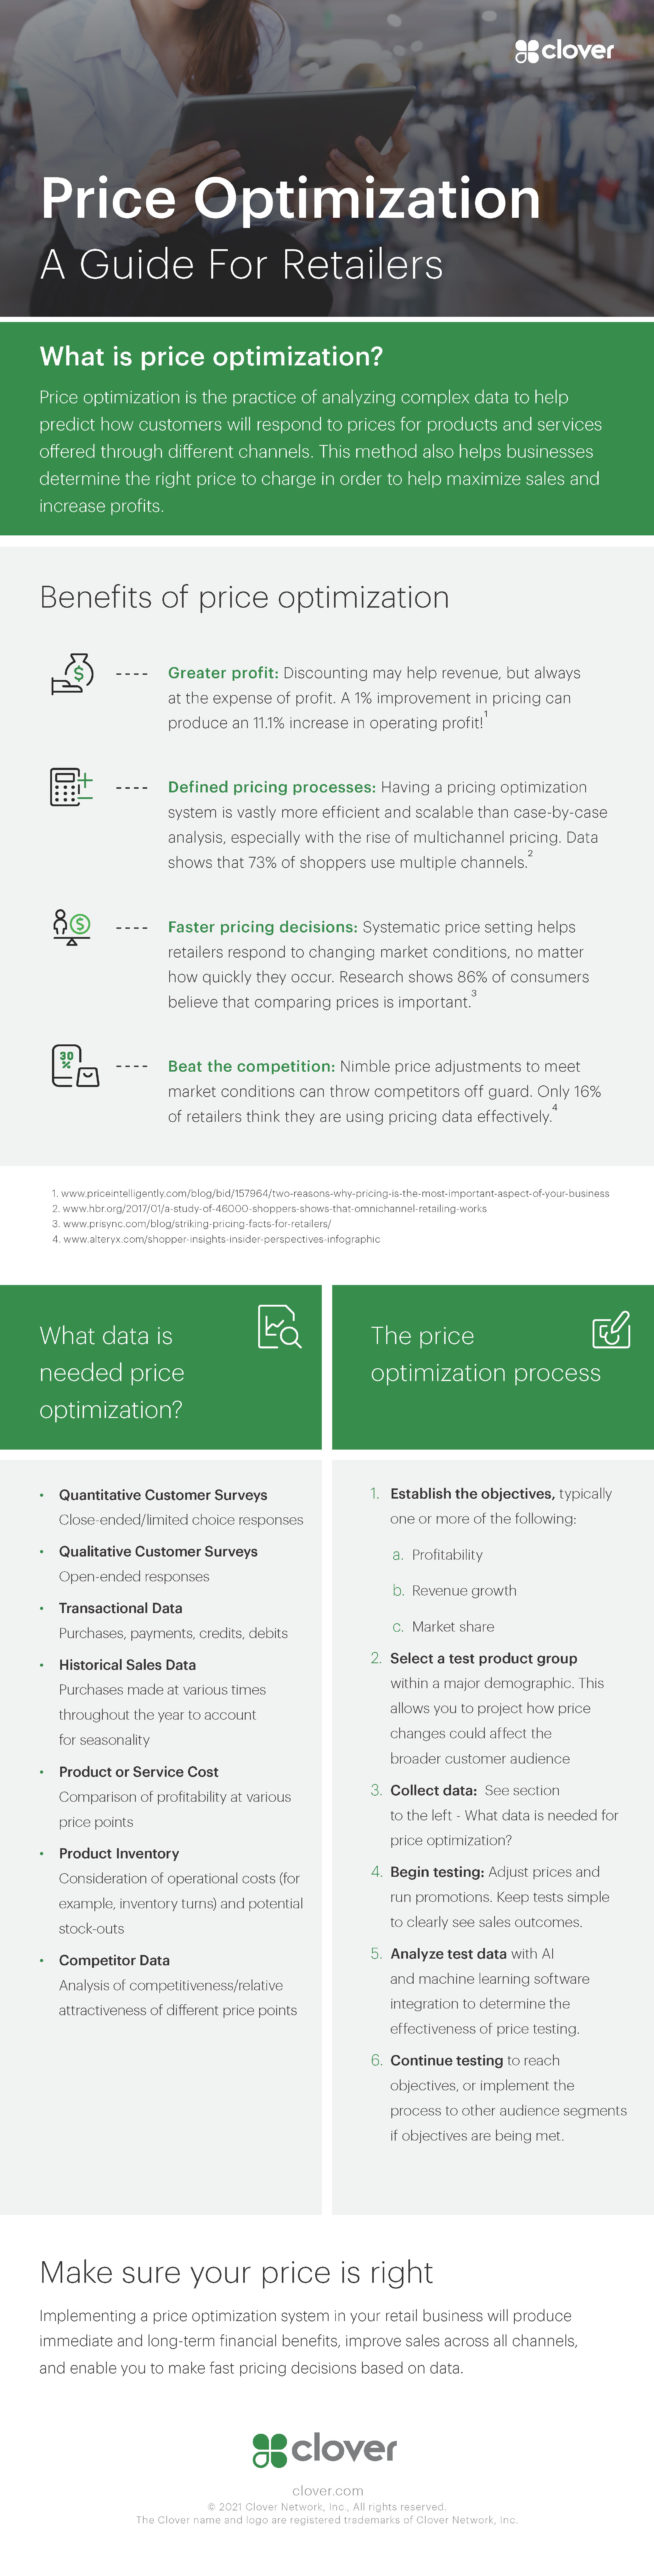 Price Optimization: A Guide For Retailers Infographic